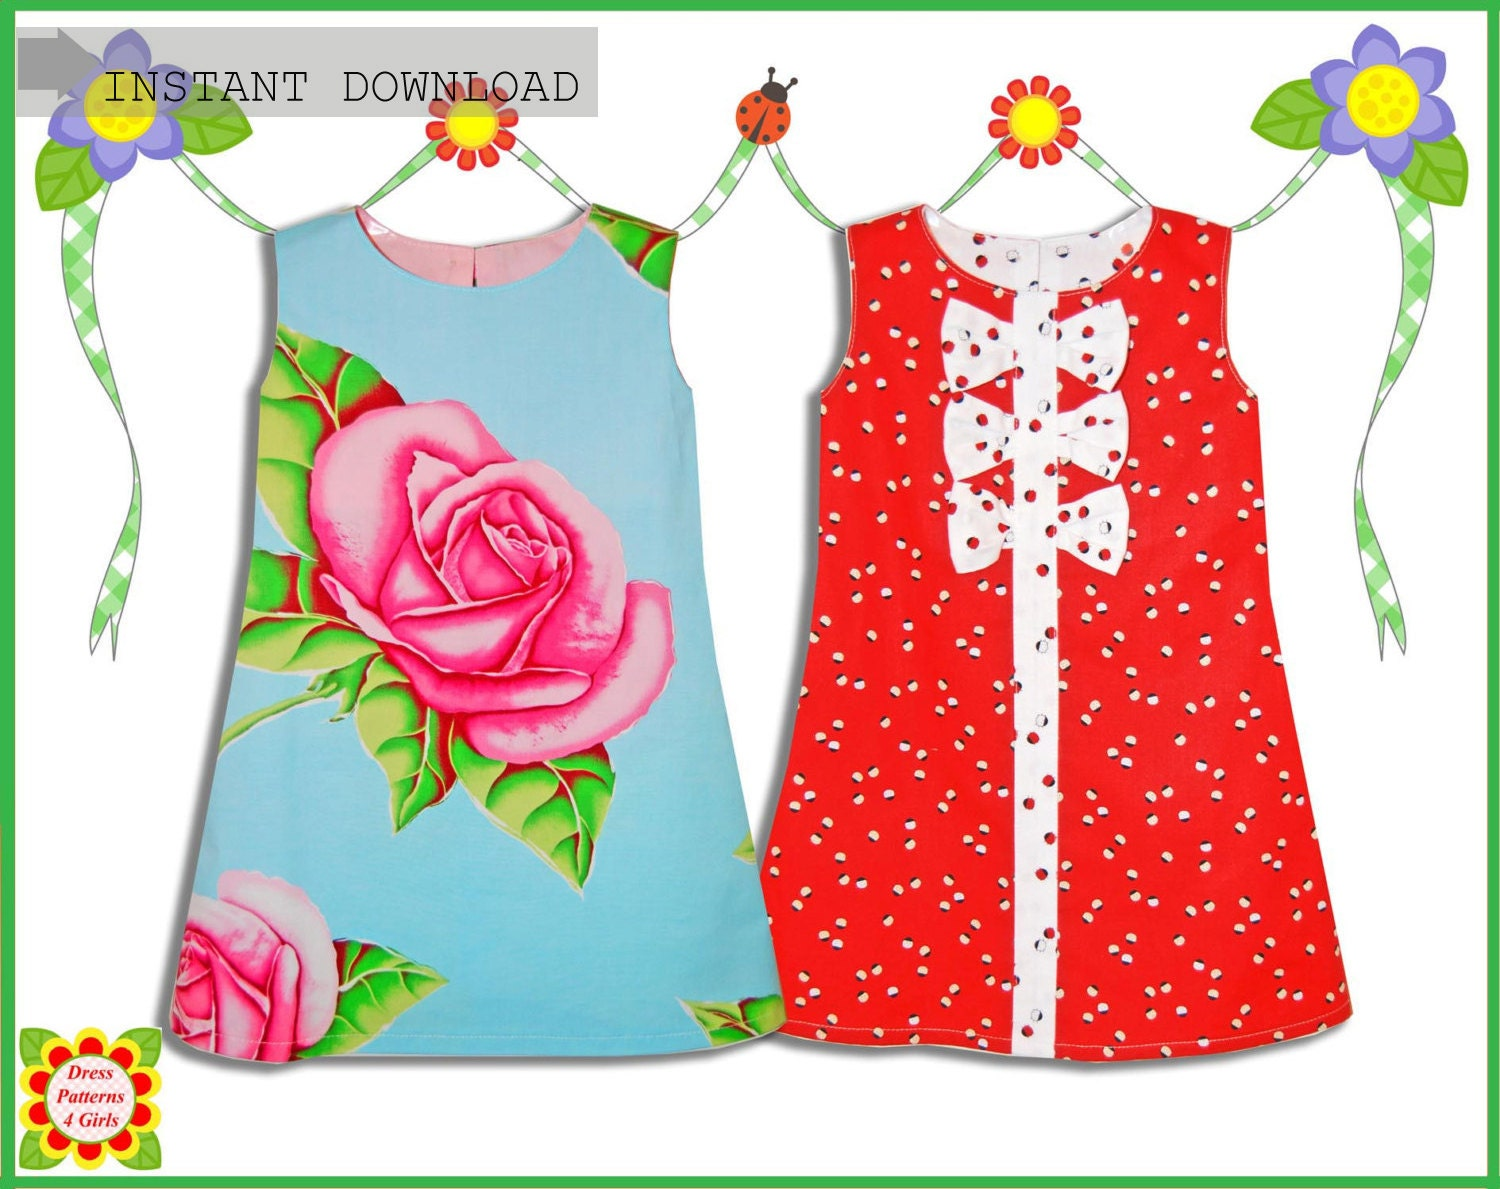 Adele girls dress patterns free mother daughter apron pattern this is a digital file jeuxipadfo Gallery